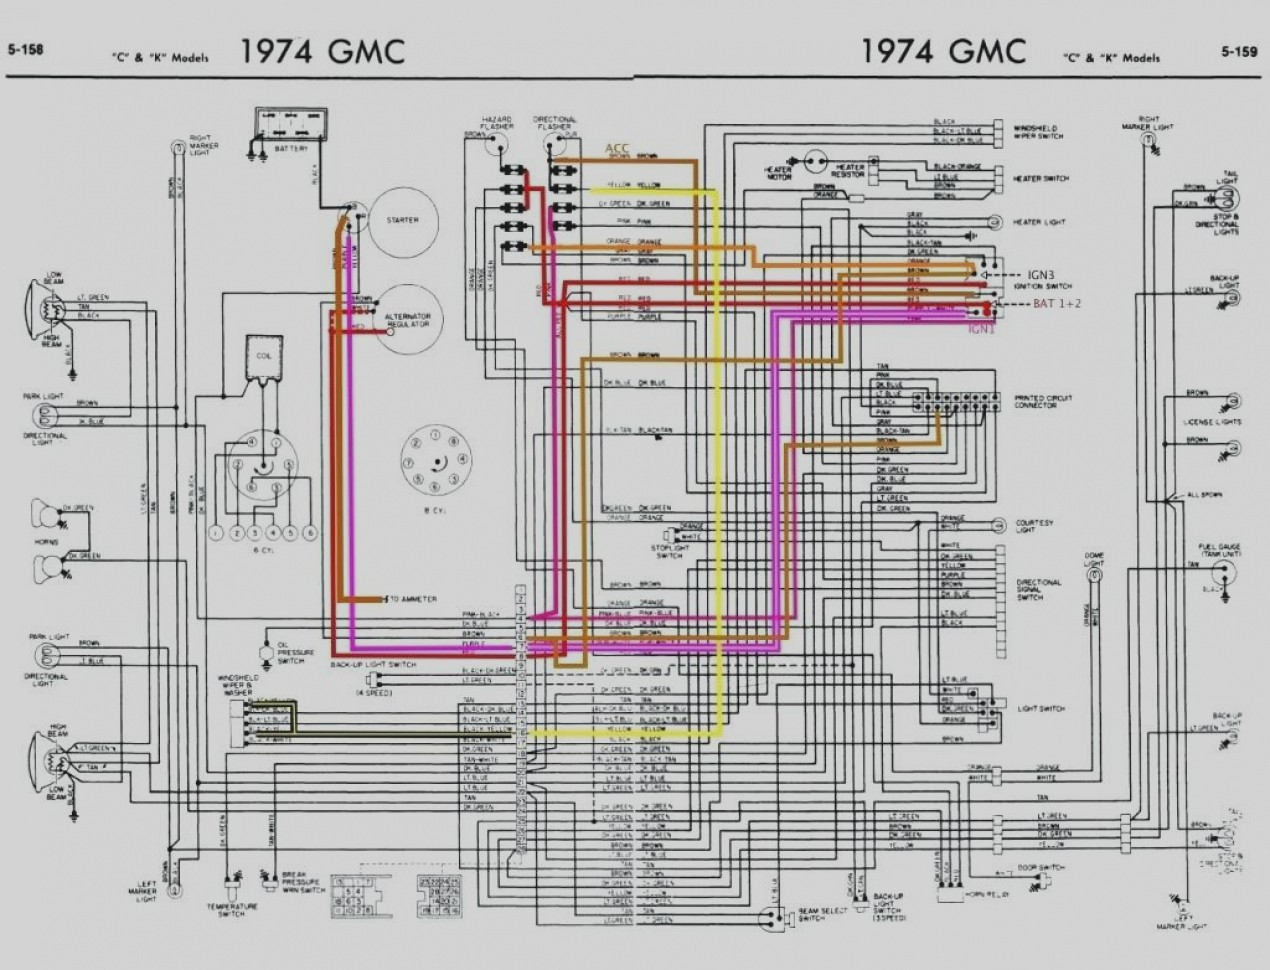 1977 Chevrolet Wiring Diagram | Wiring DiagramWiring Diagram - Autoscout24